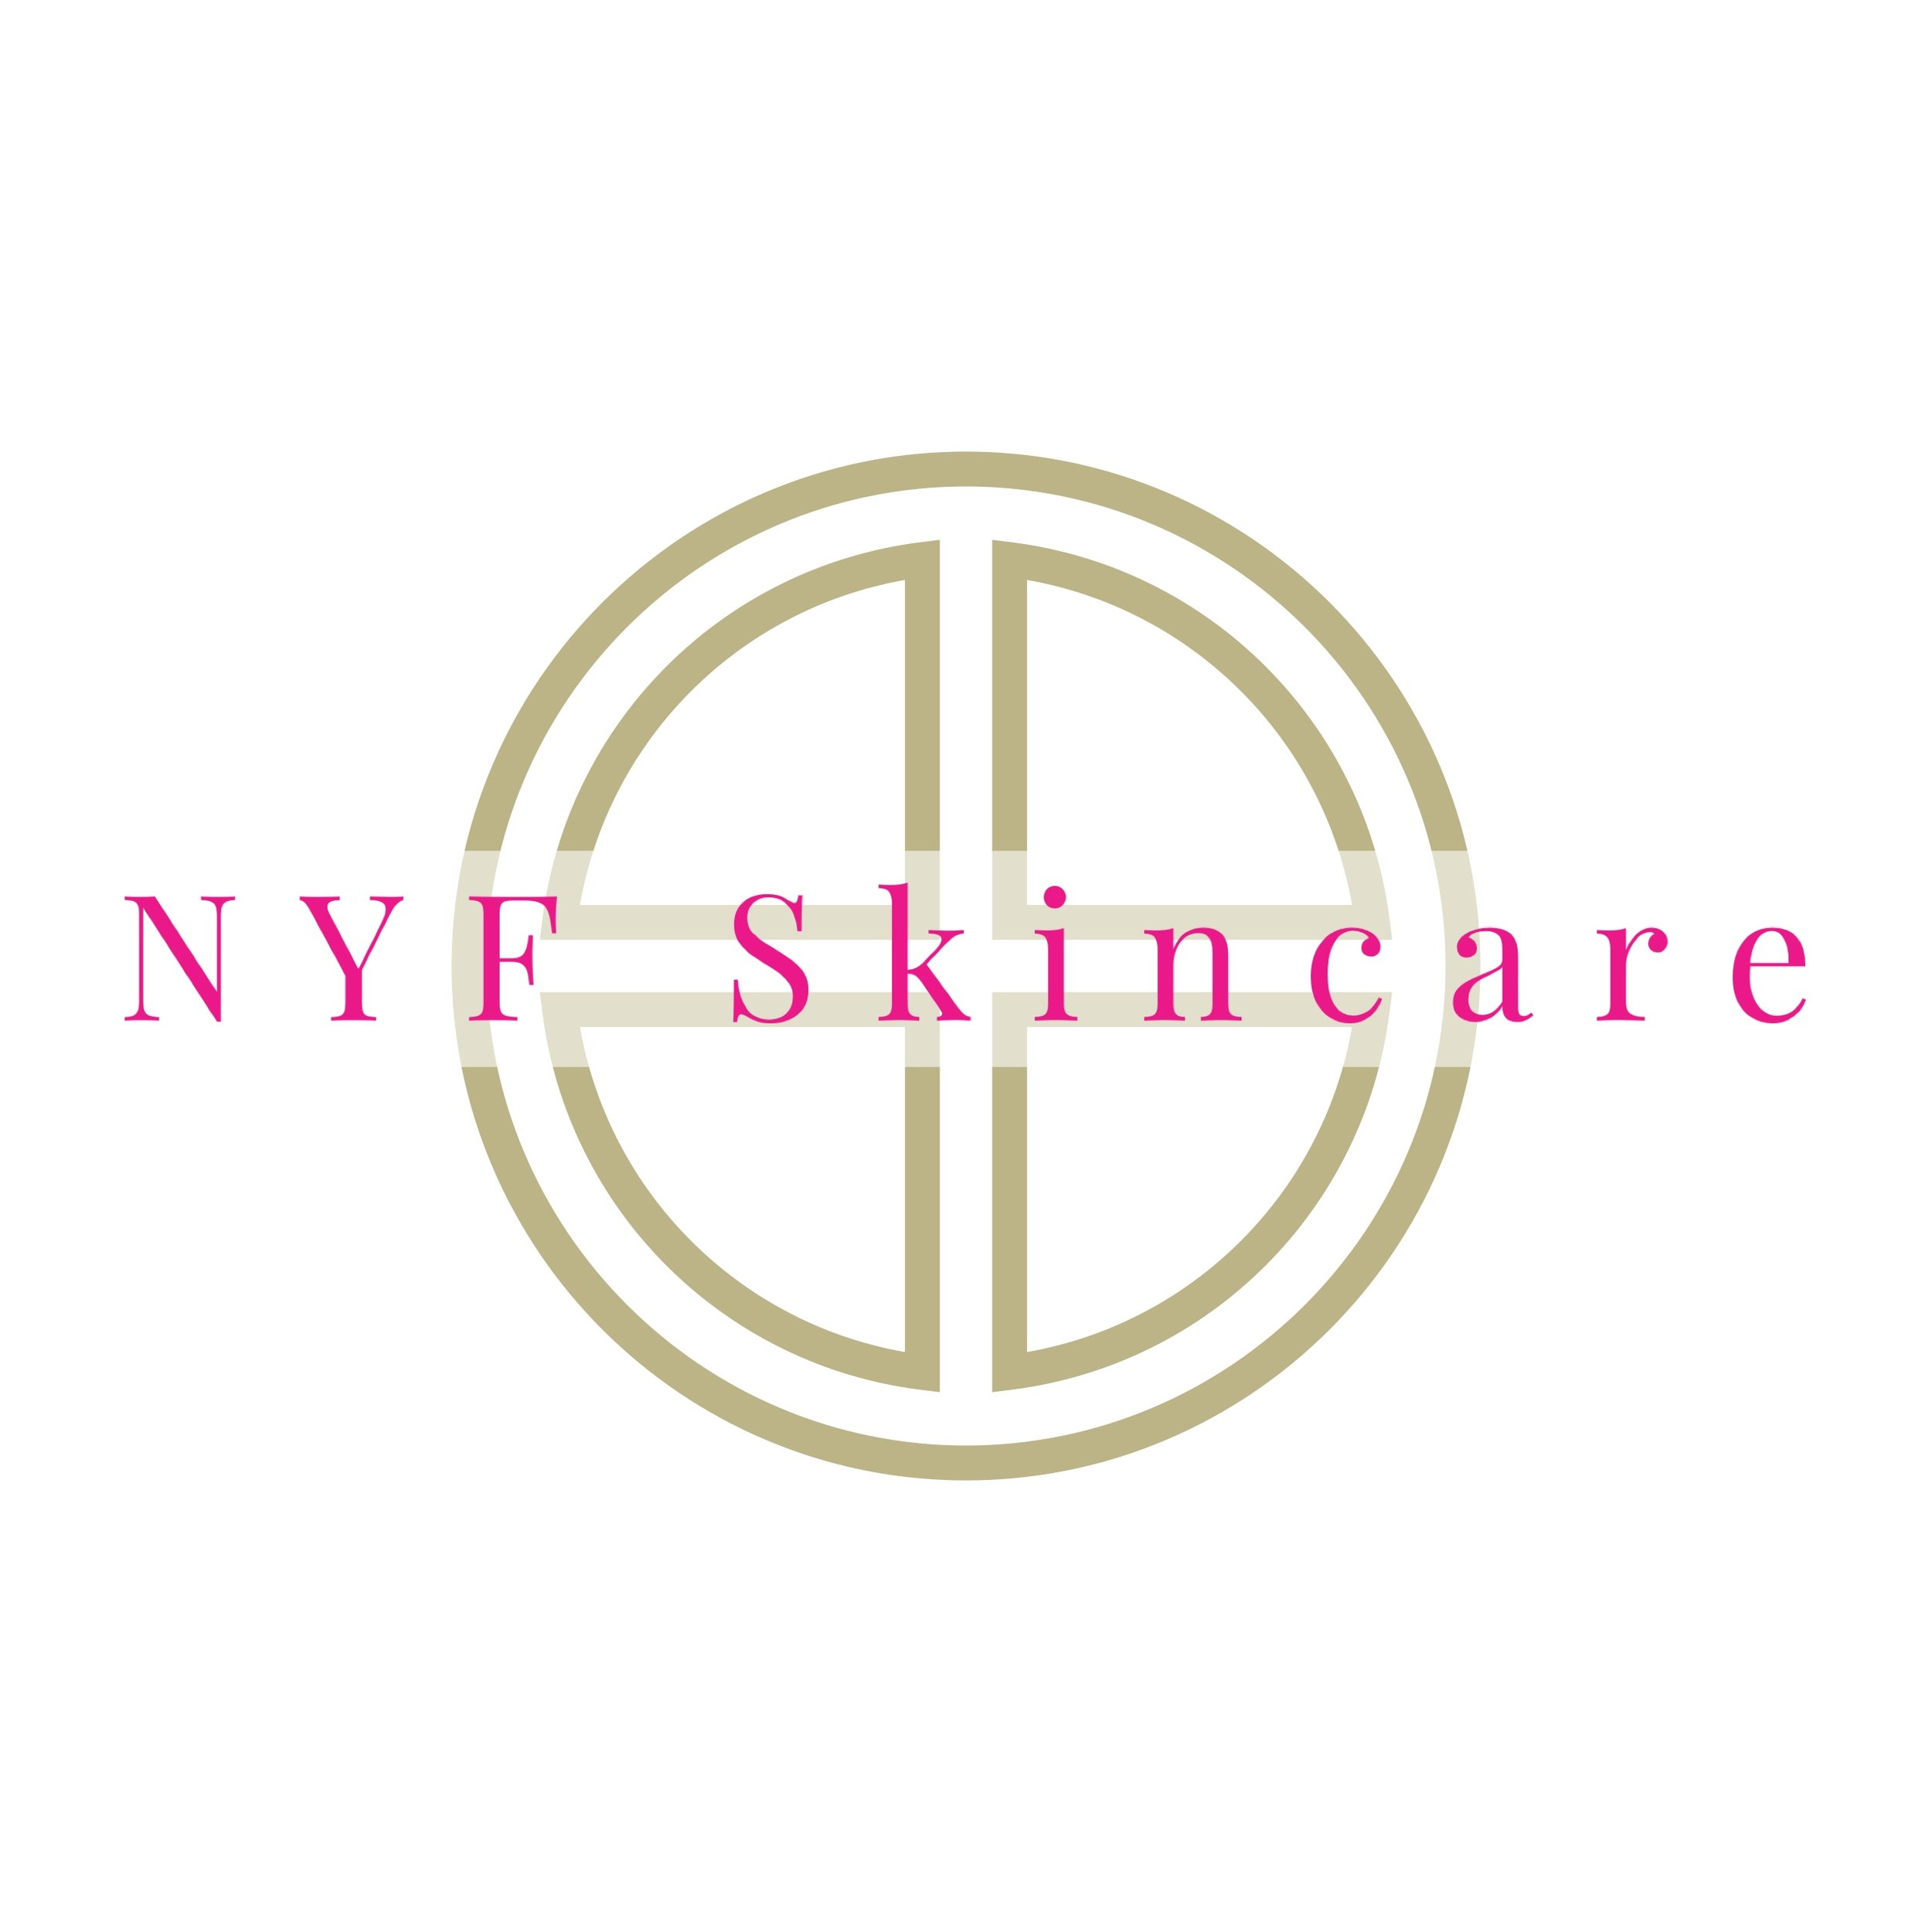 Suite #11 (Injector & Skin Care Specialist)    NYF Skincare    Amanda                                      602-419-5559     nyfskincare.com      nyfskincare@gmail.com